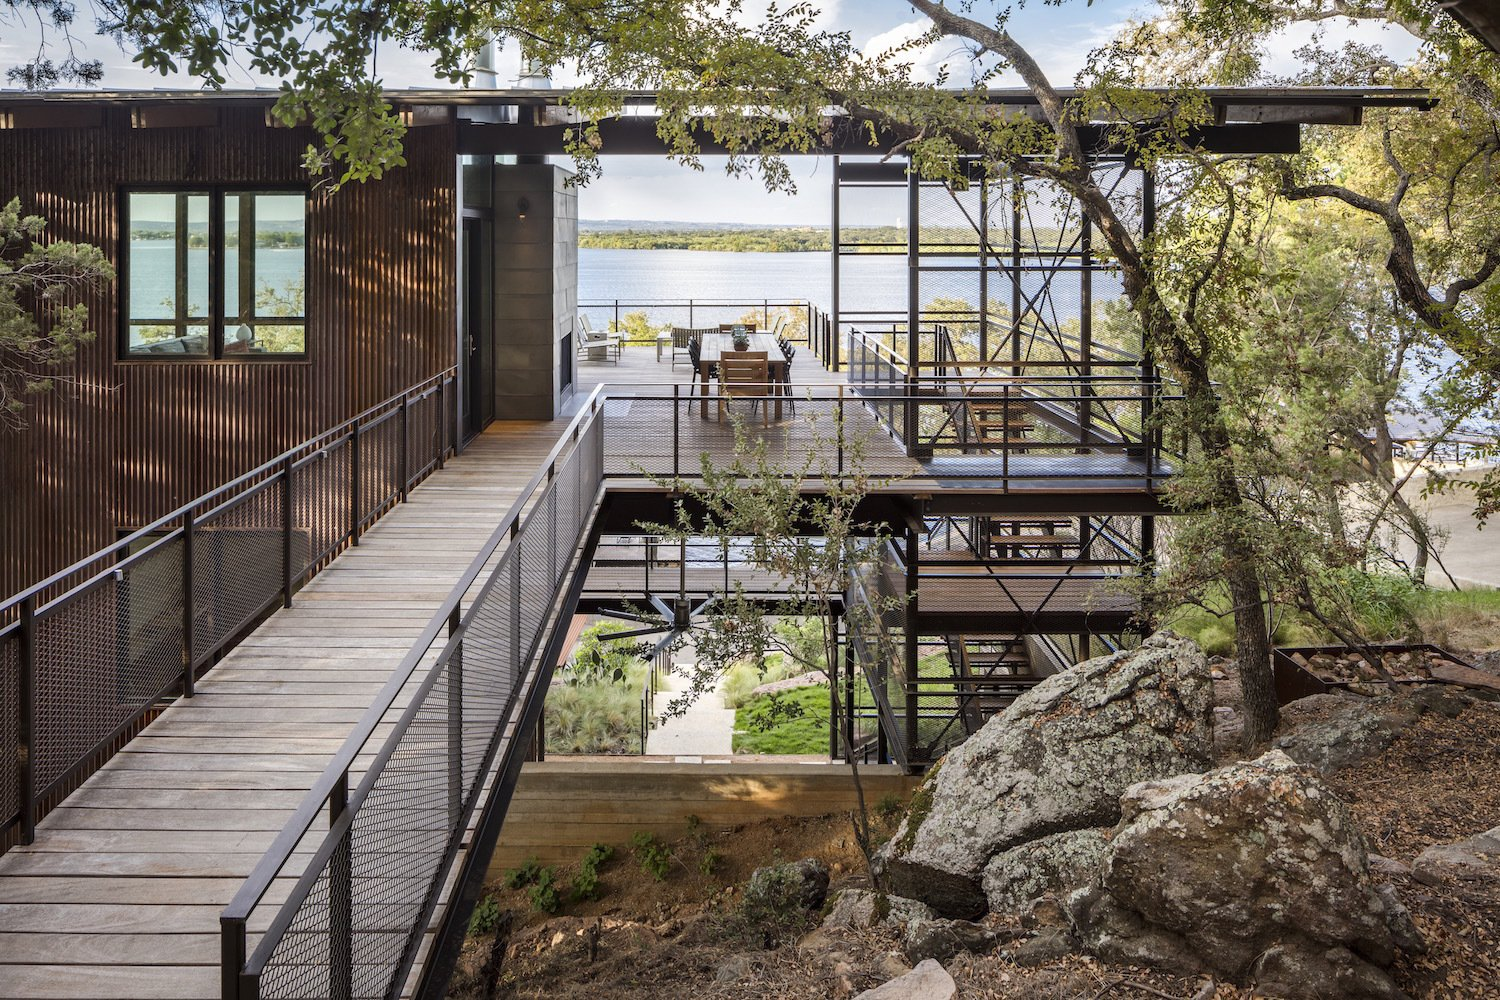 Outdoor, Boulders, Trees, and Wood Patio, Porch, Deck  Photo 7 of 11 in A Spectacular Lakeside Retreat in Texas Embraces the Outdoors